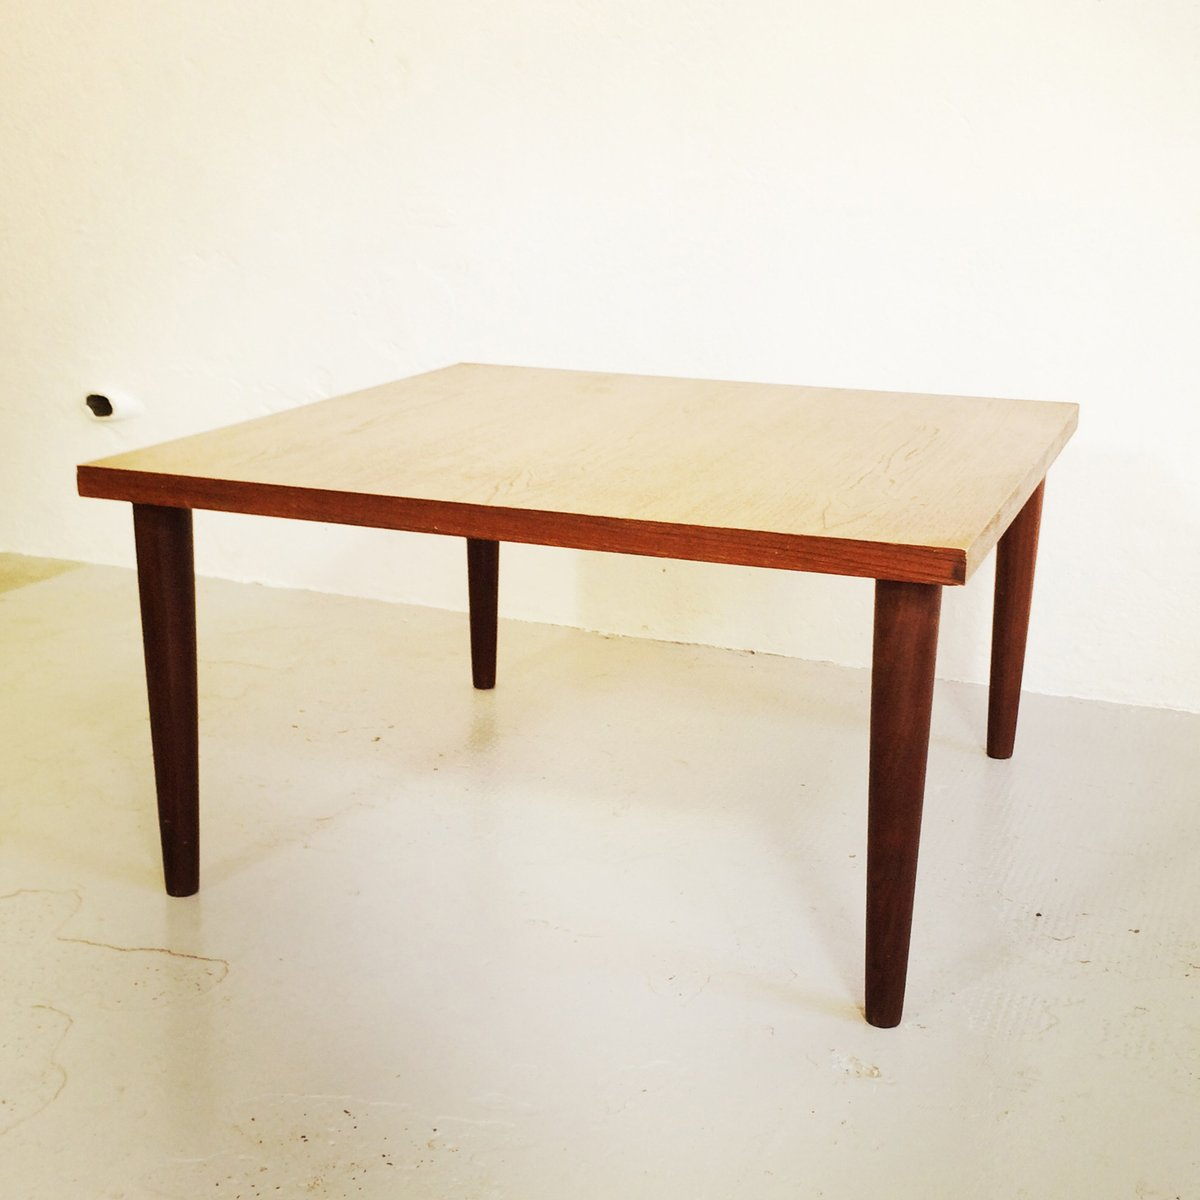 Table basse scandinave moderne en vente sur pamono for Table scandinave soldes